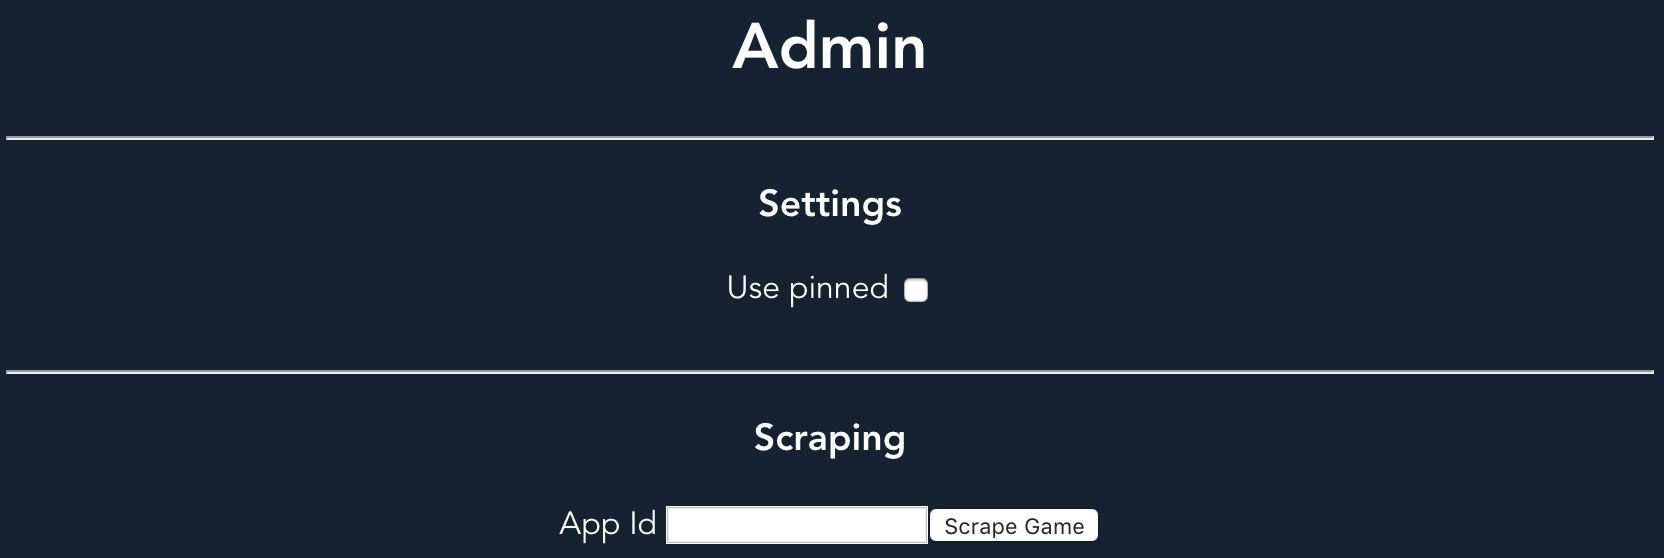 Admin panel for the tool